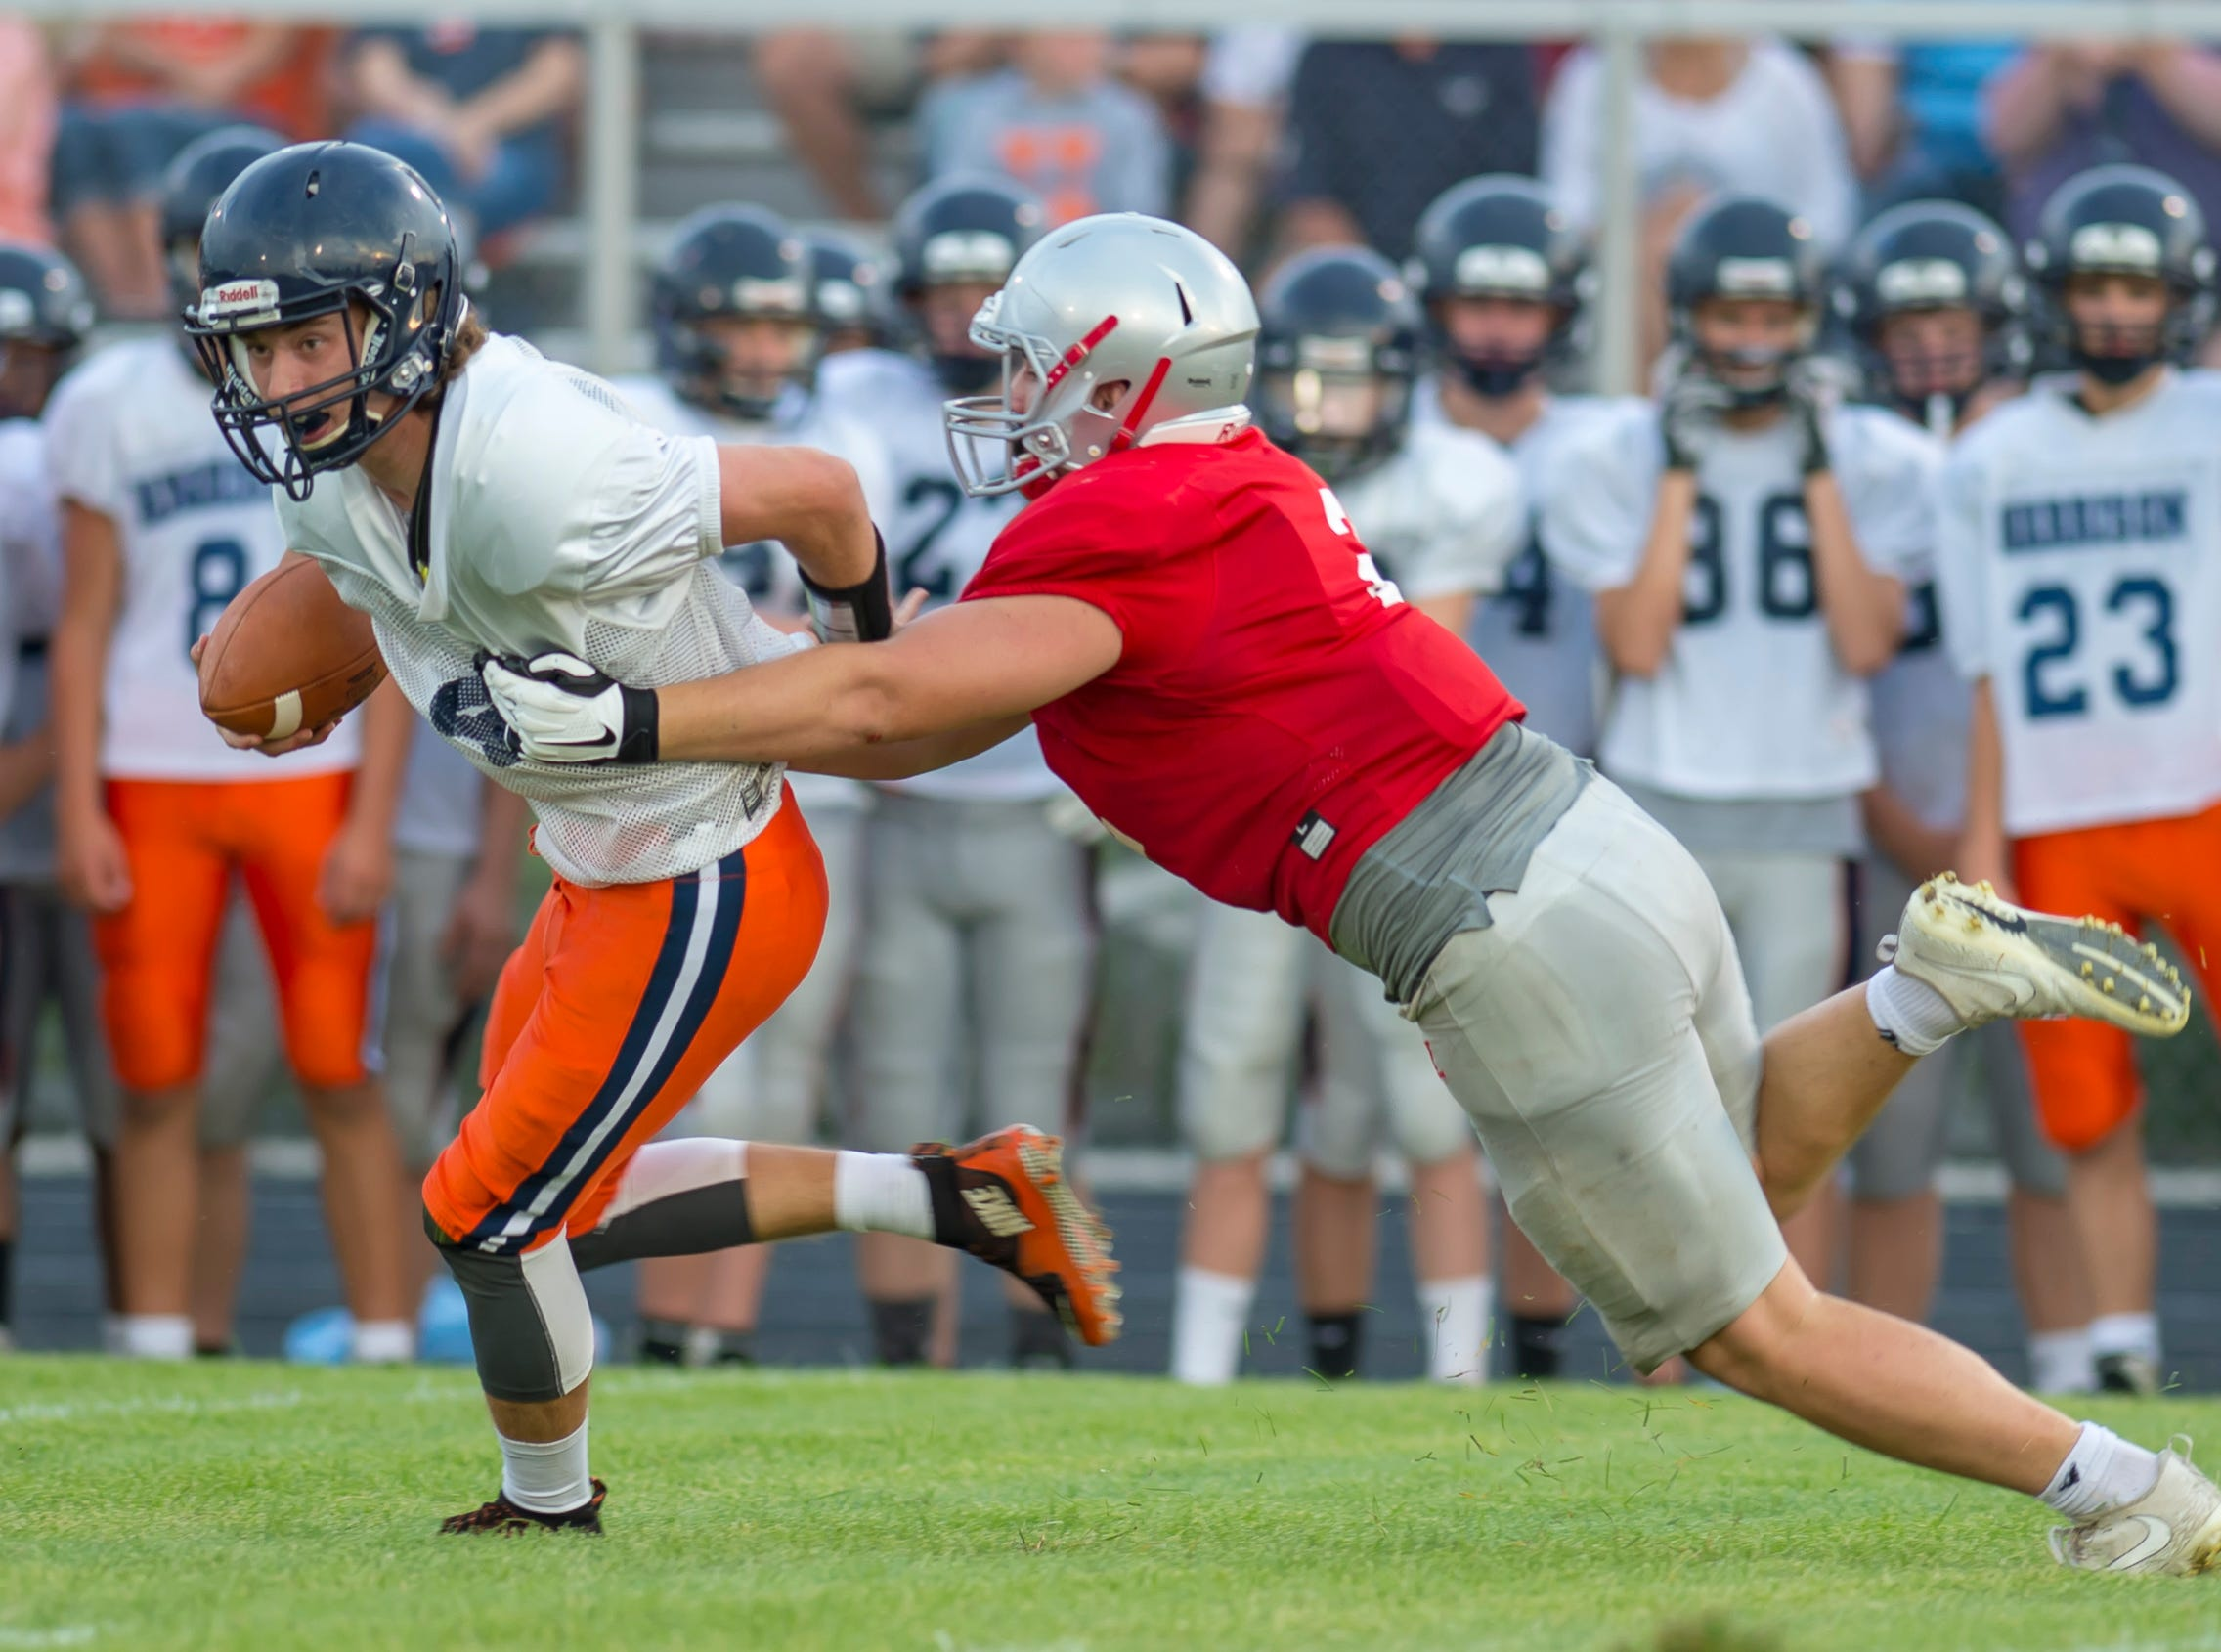 Joey Kidwell's second sack in the football scrimmage between the Harrison Raiders and the West Lafayette Red Devils from Gordon Straley Field